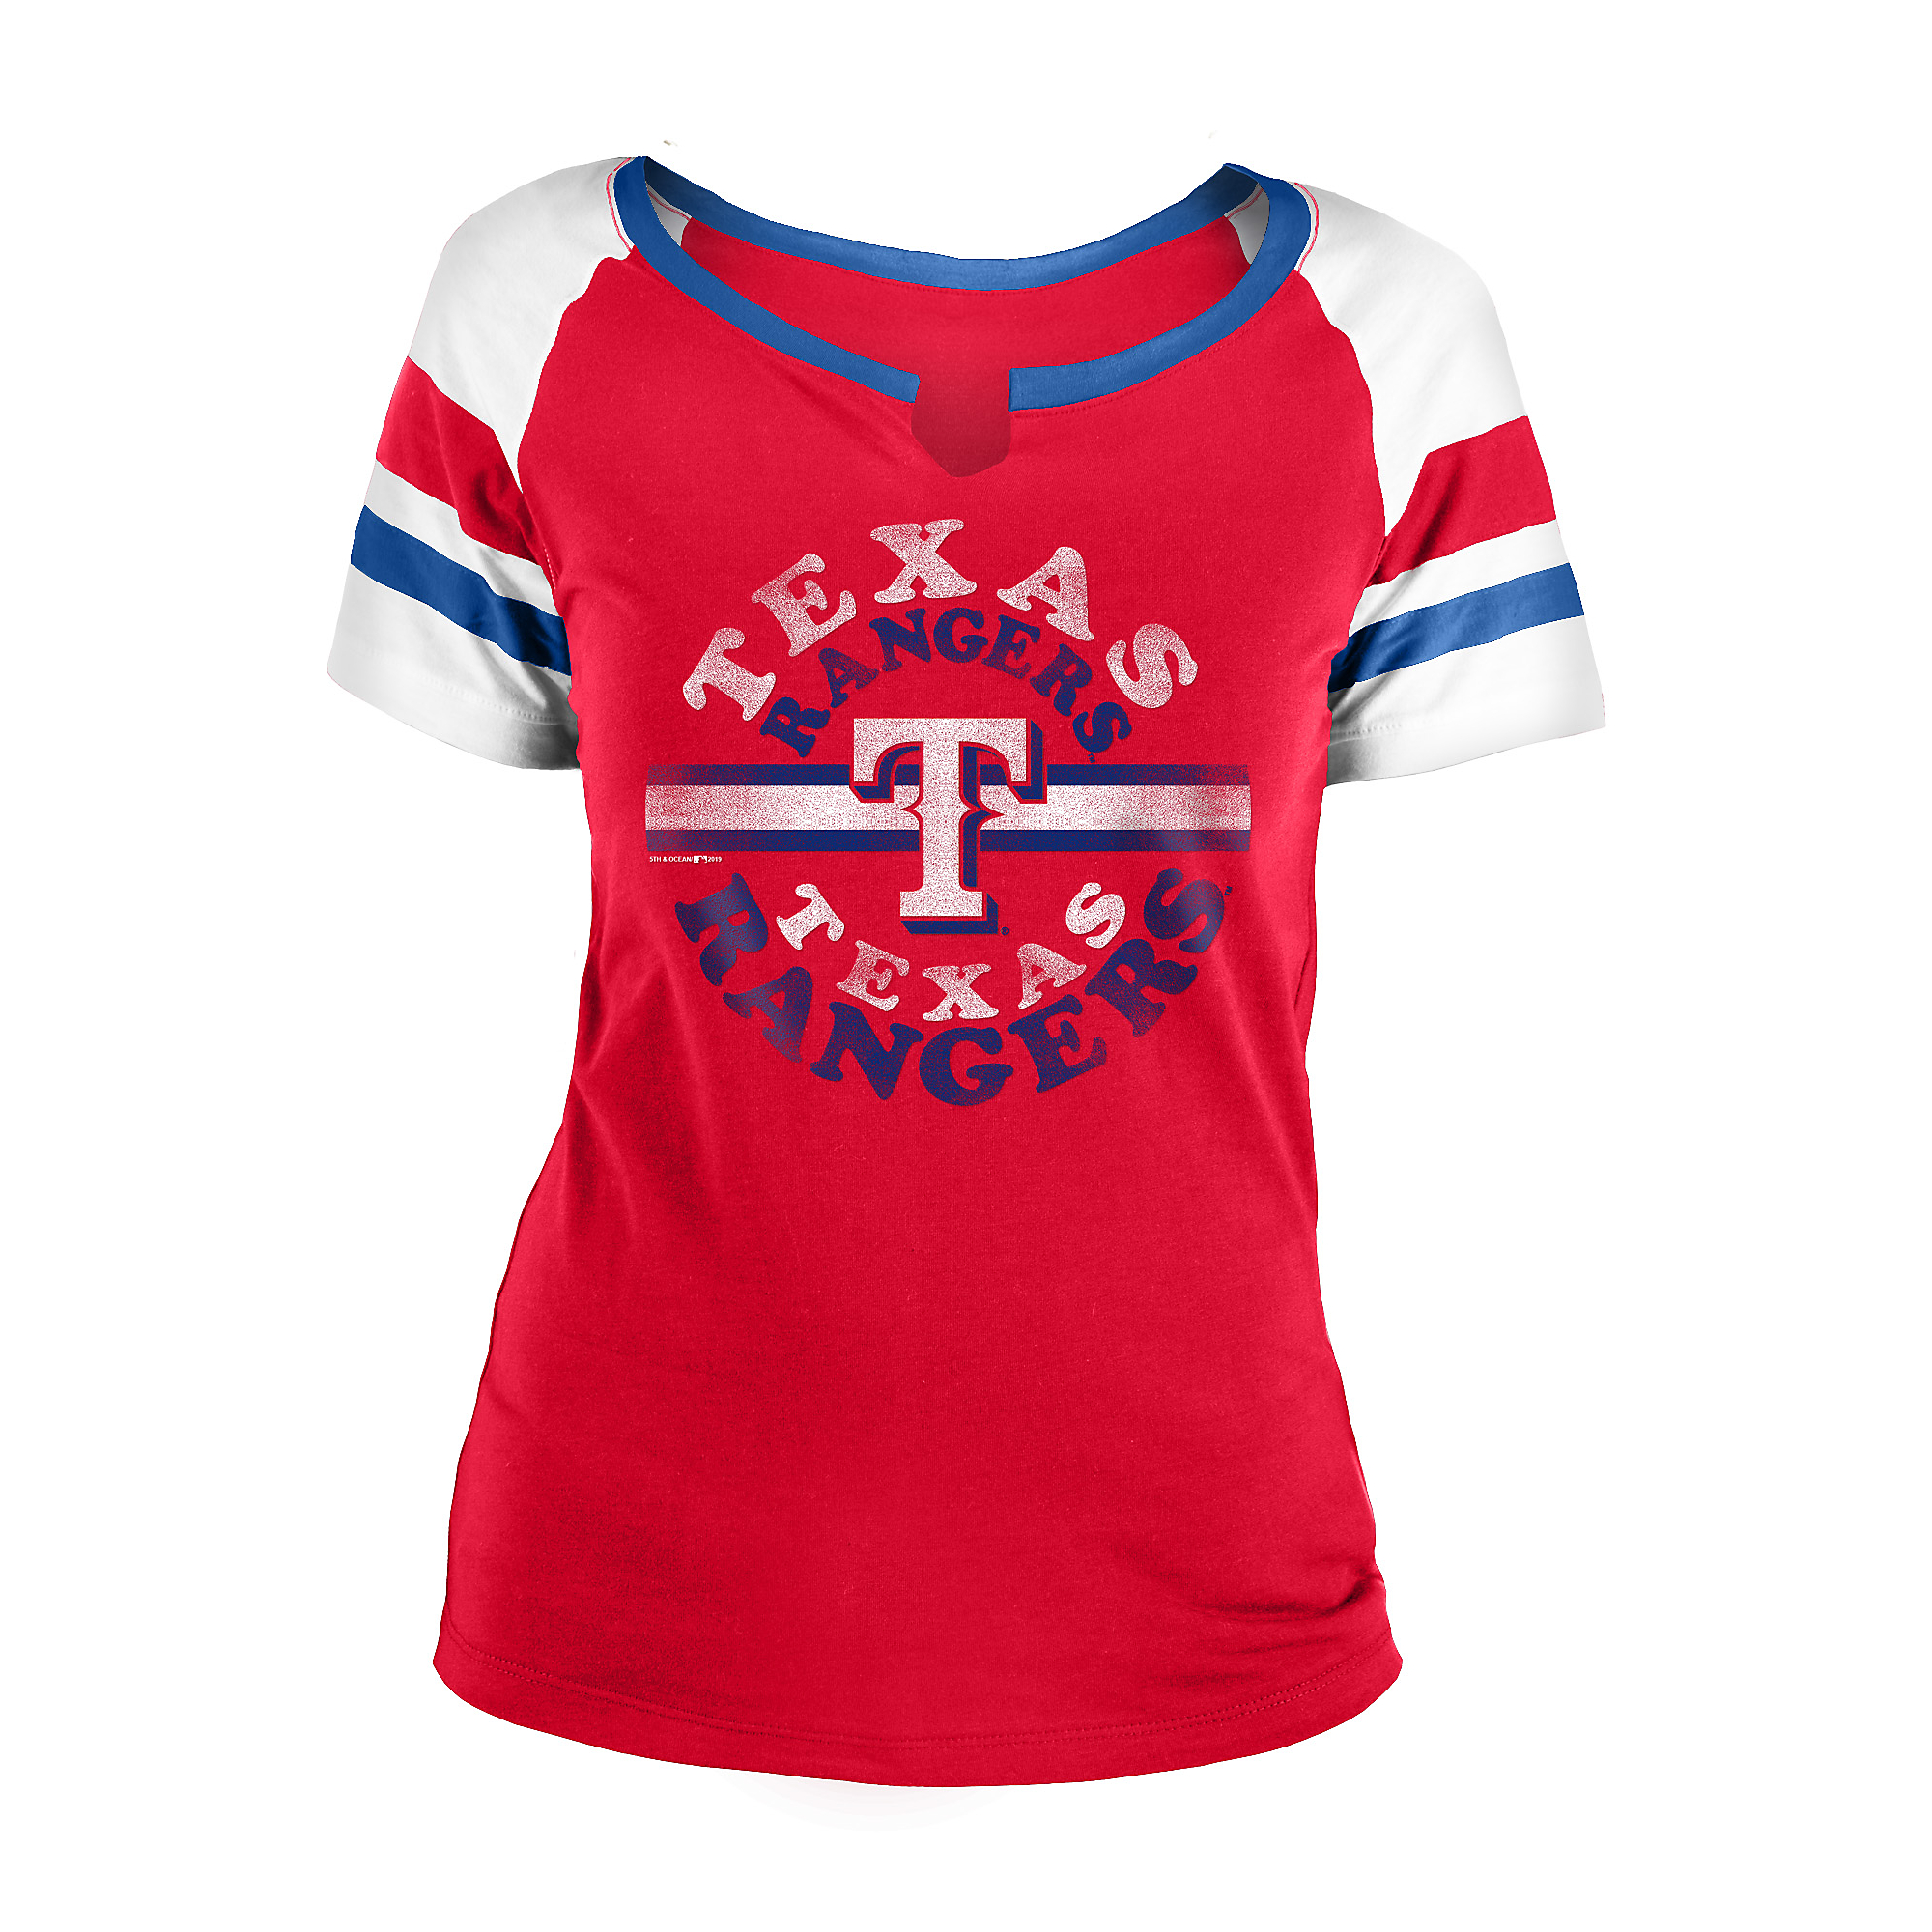 Texas Rangers 5th & Ocean Womens Baby Split Scoop Jersey T-Shirt